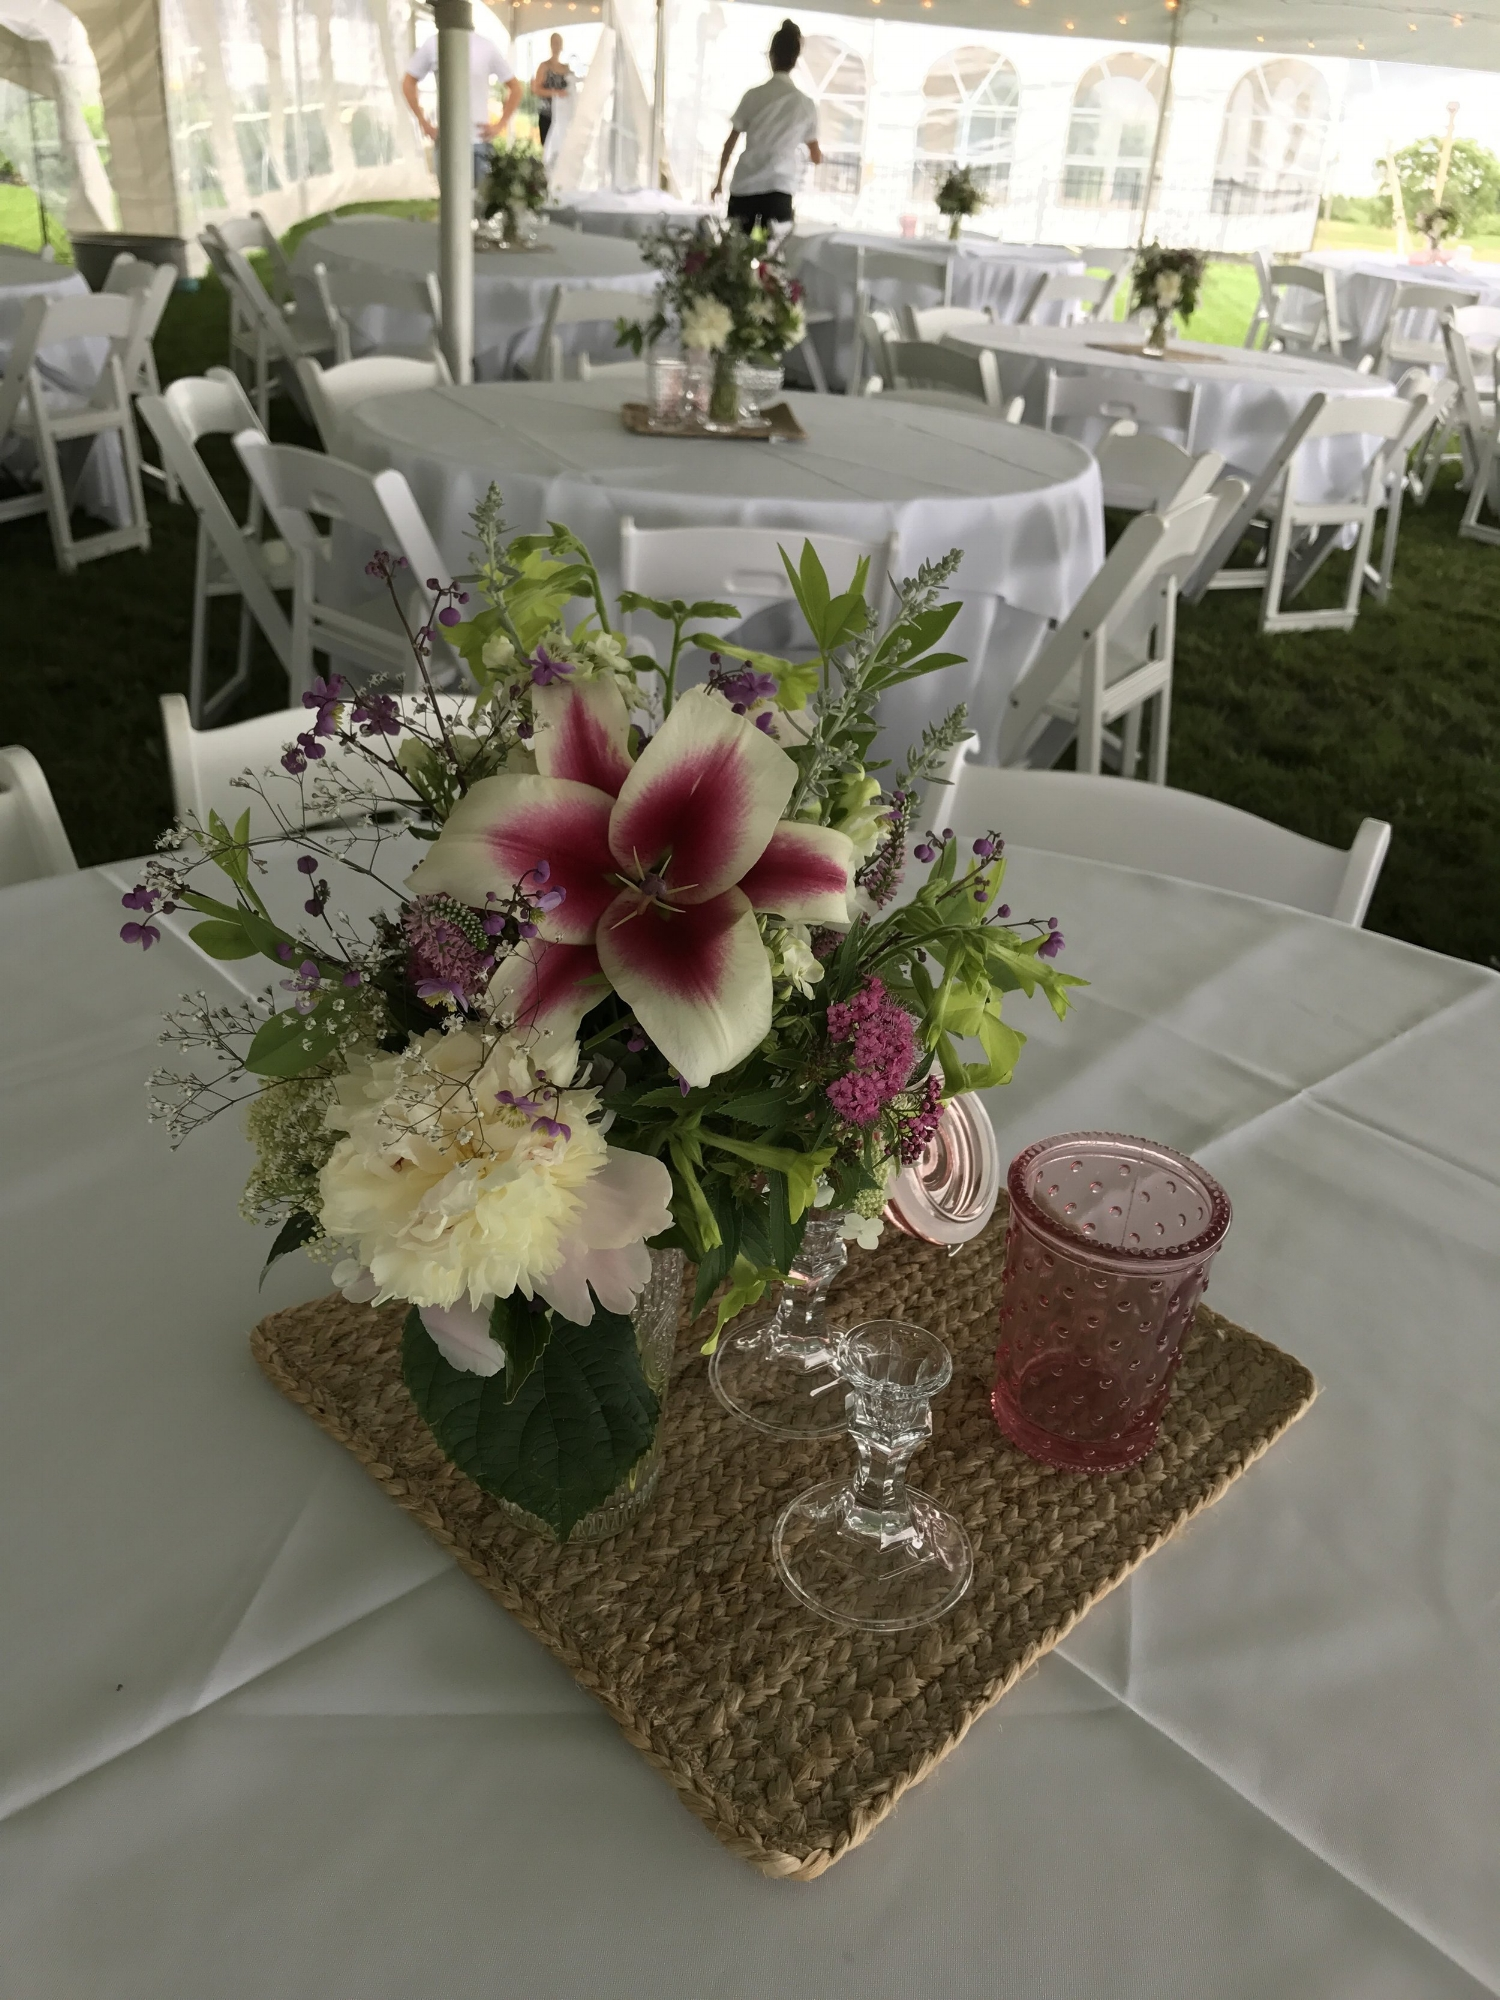 Mid-July Vase Centerpiece